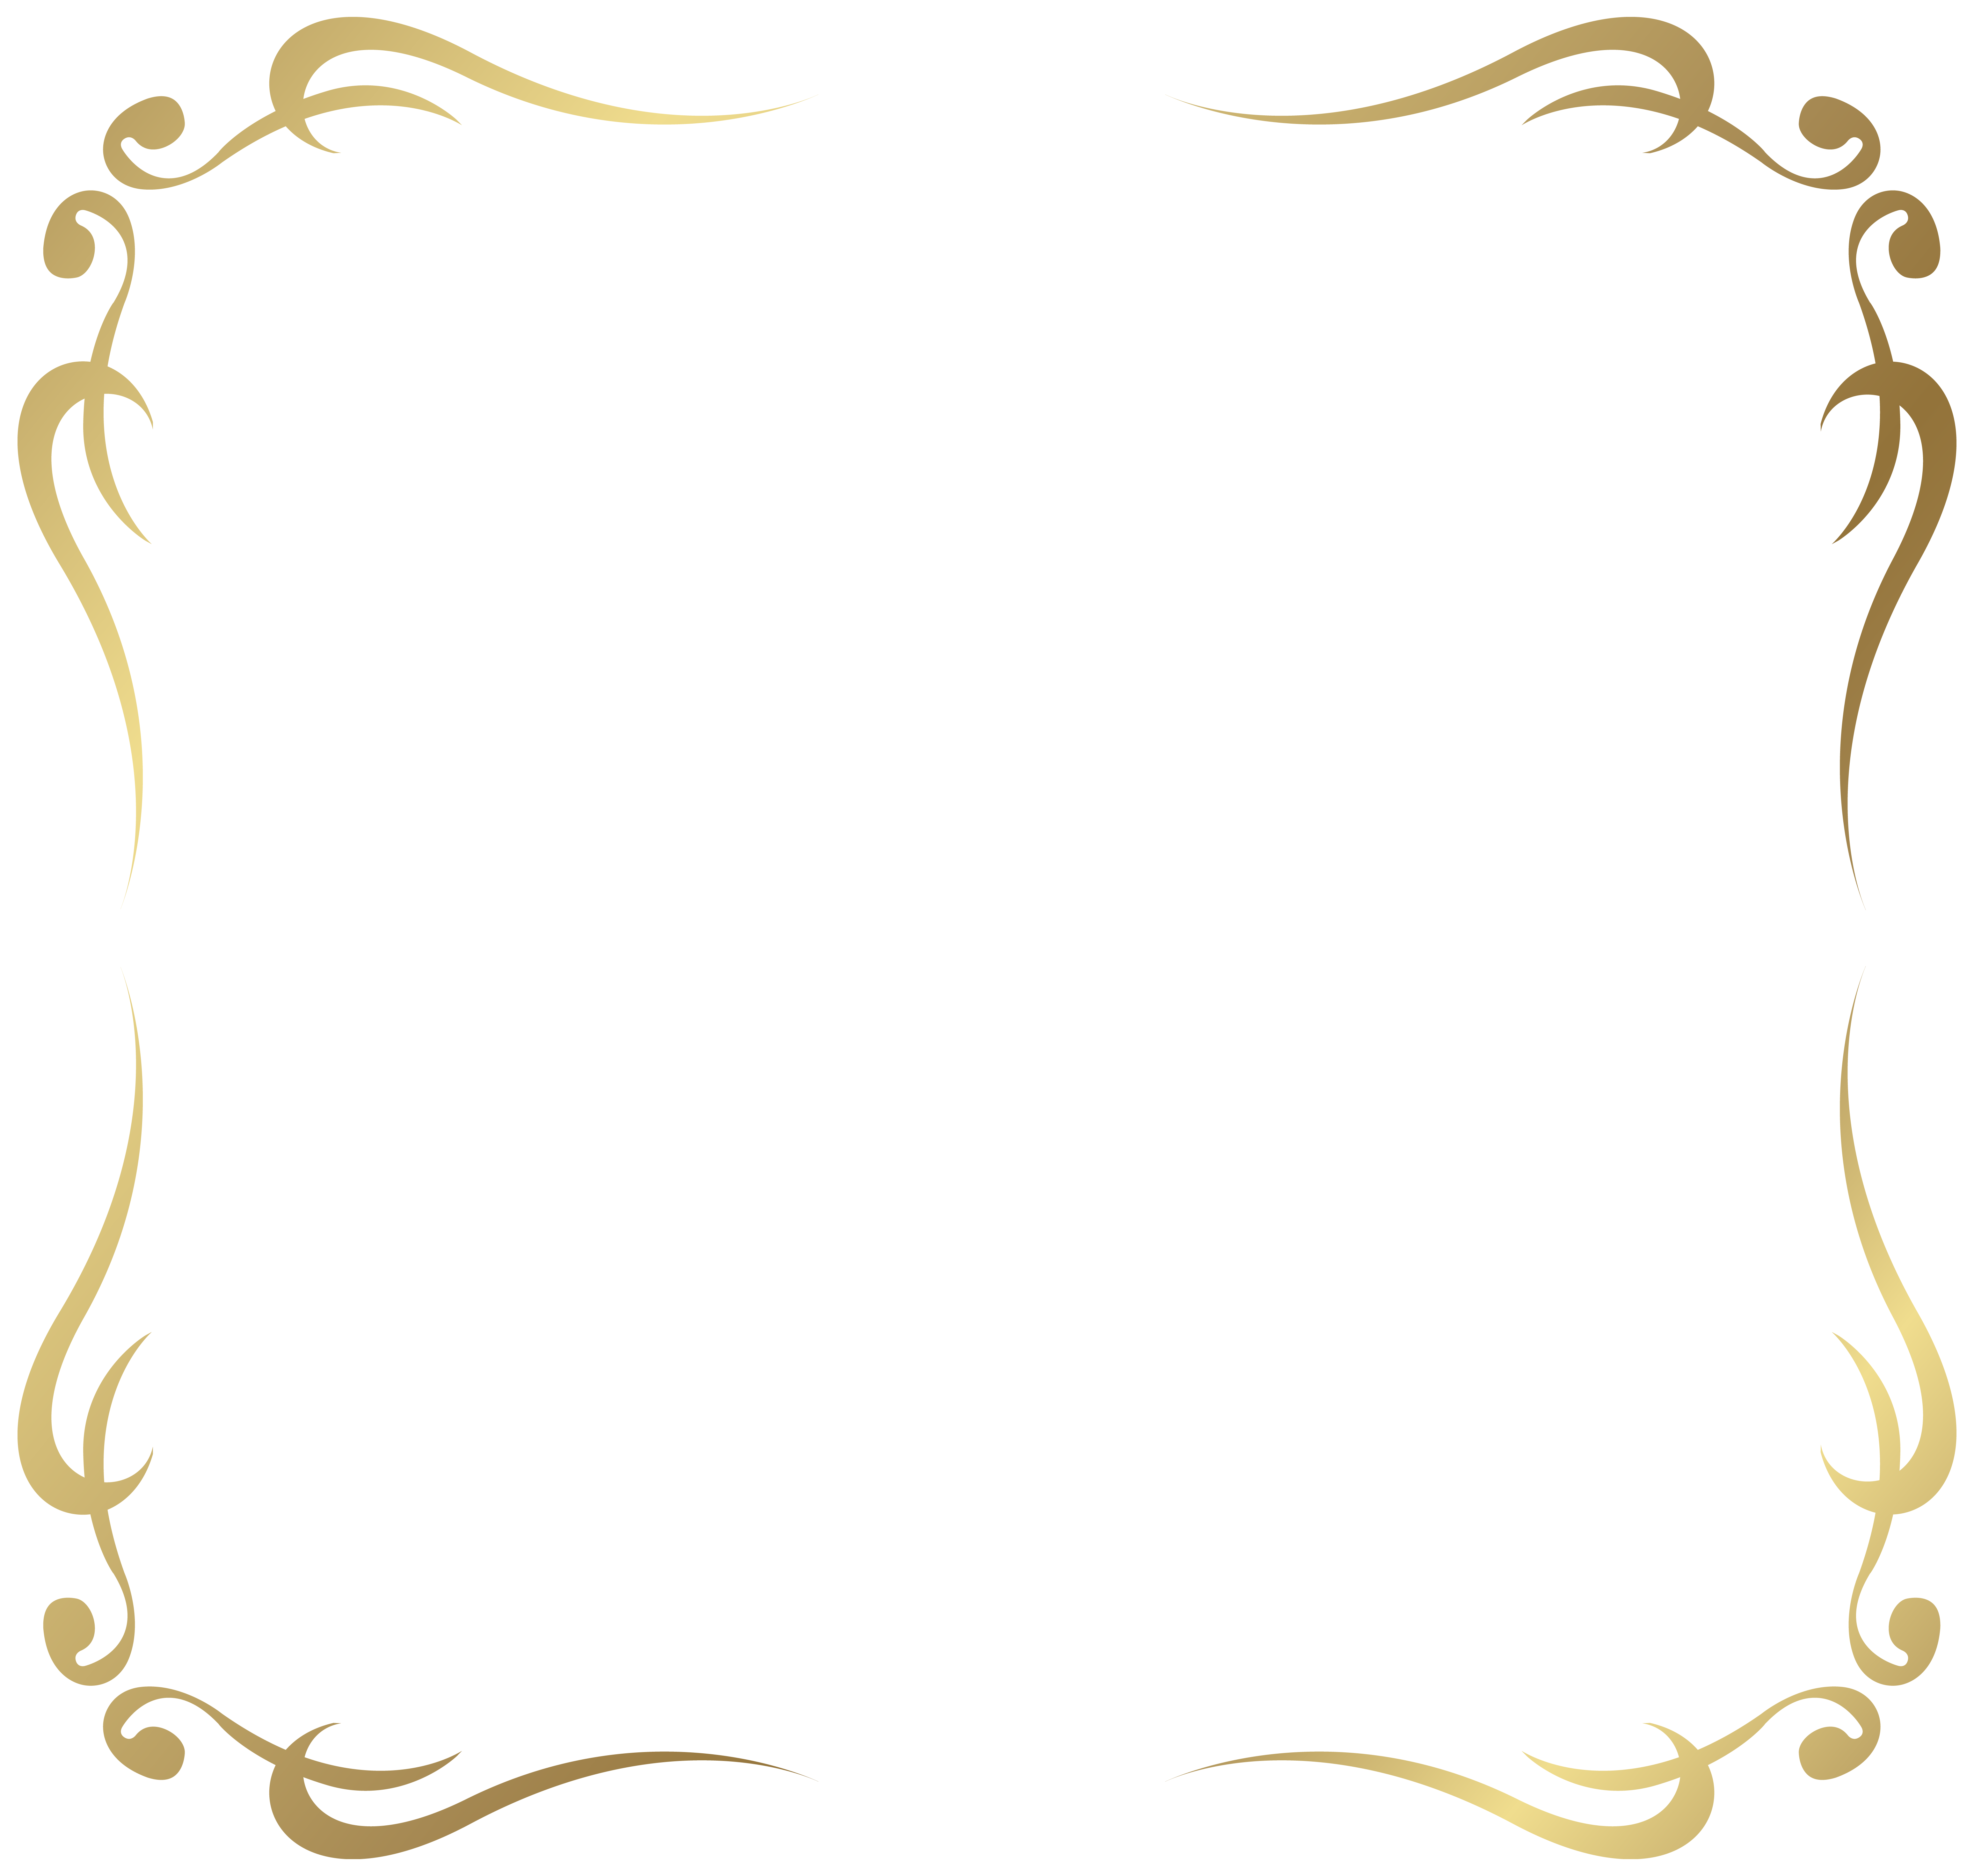 Photo Frame Border download borders PNG images